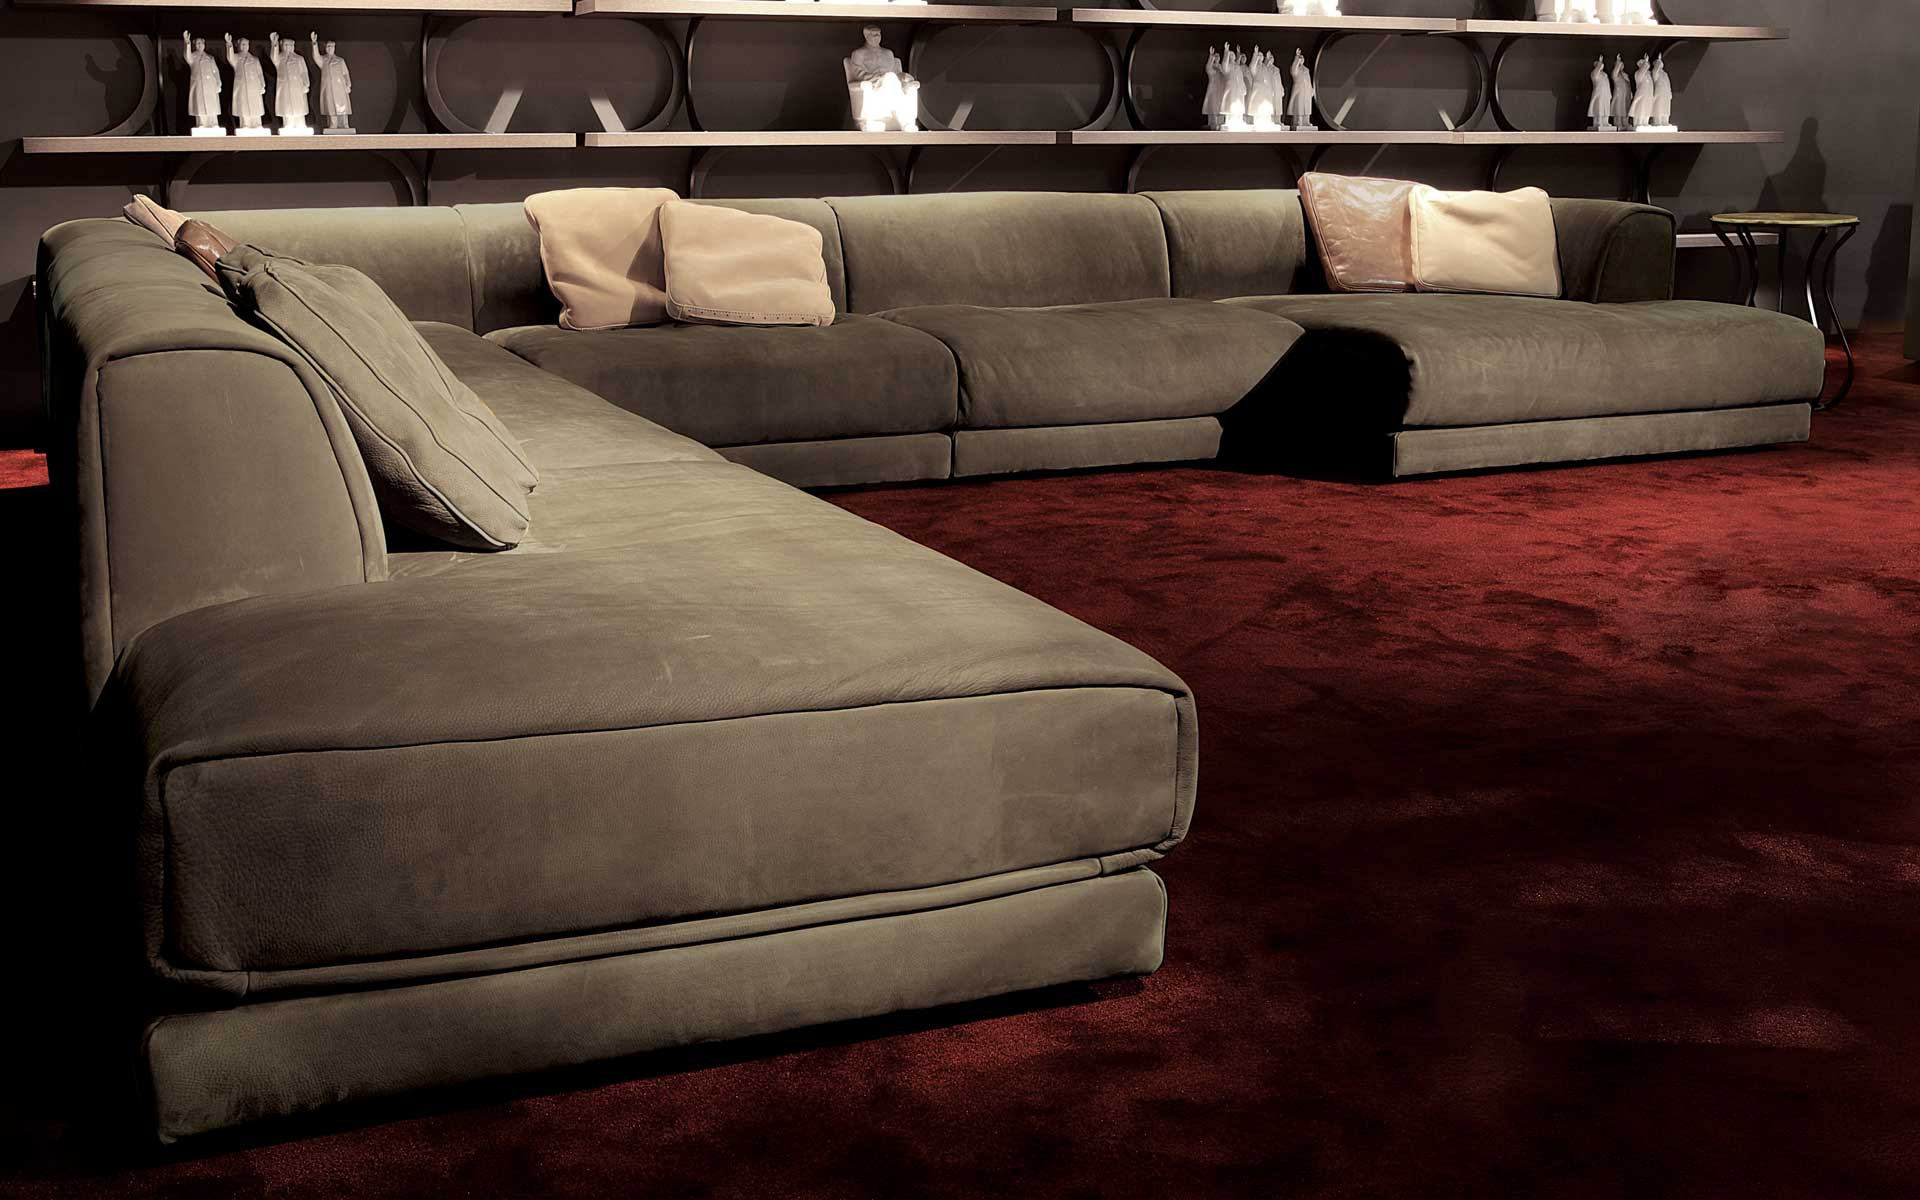 baxter sofa budapest soft sofa baxter armchairs and sofas thesofa. Black Bedroom Furniture Sets. Home Design Ideas